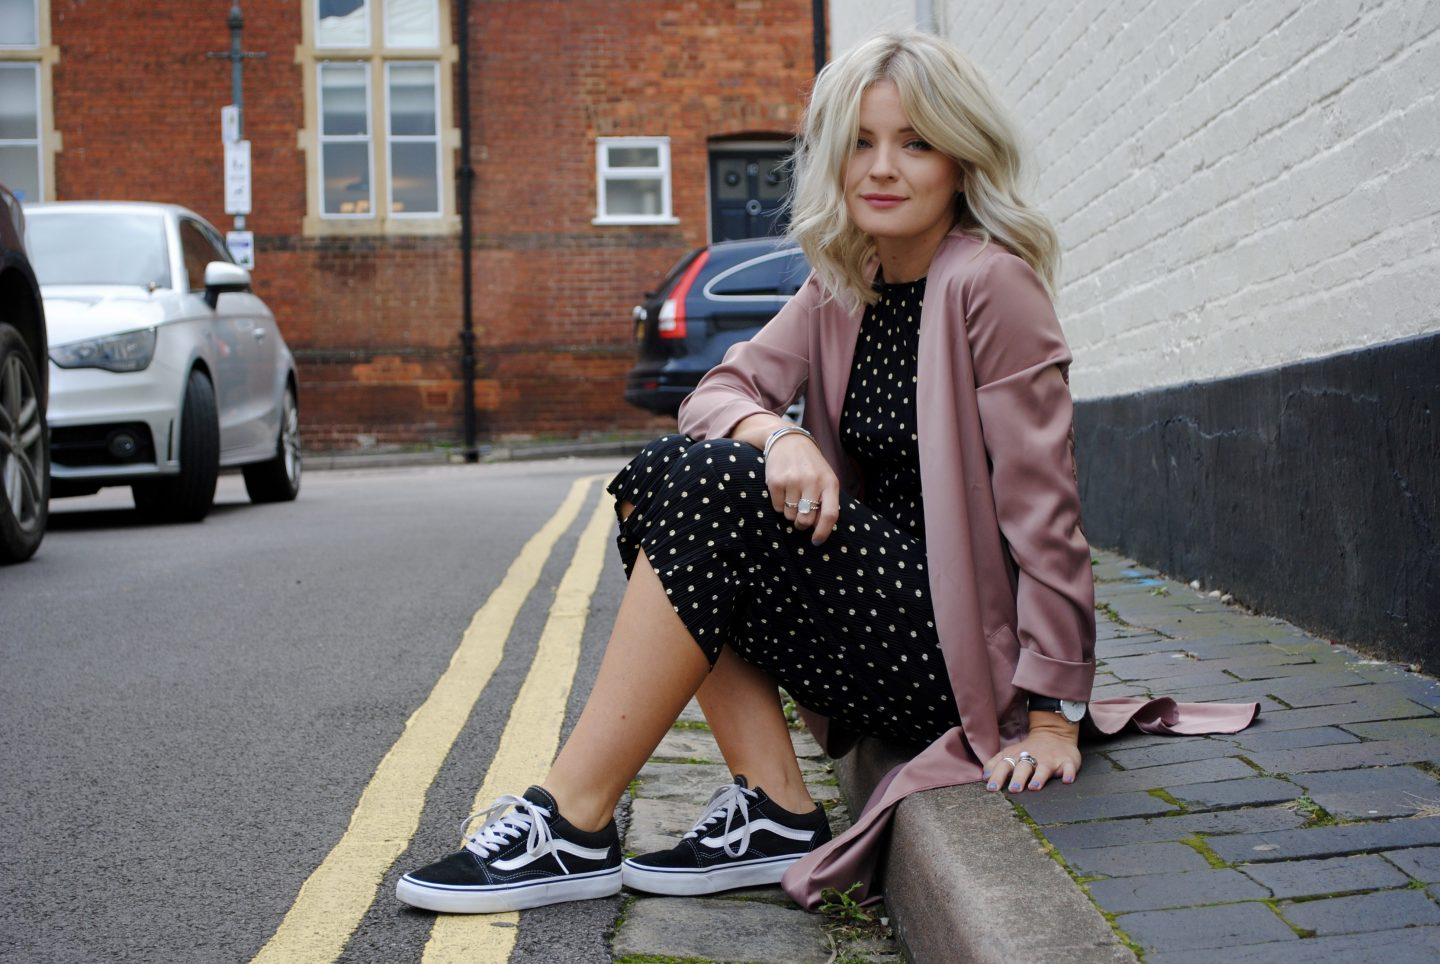 laura byrnes, lauras little locket, polka dot playsuit, culotte playsuit, pleated playsuit, culotte jumpsuit, pink duster jacket, dusky pink longline jacket, embroidered jacket, black vans, old school black vans, st albans, fashion blogger, street style,